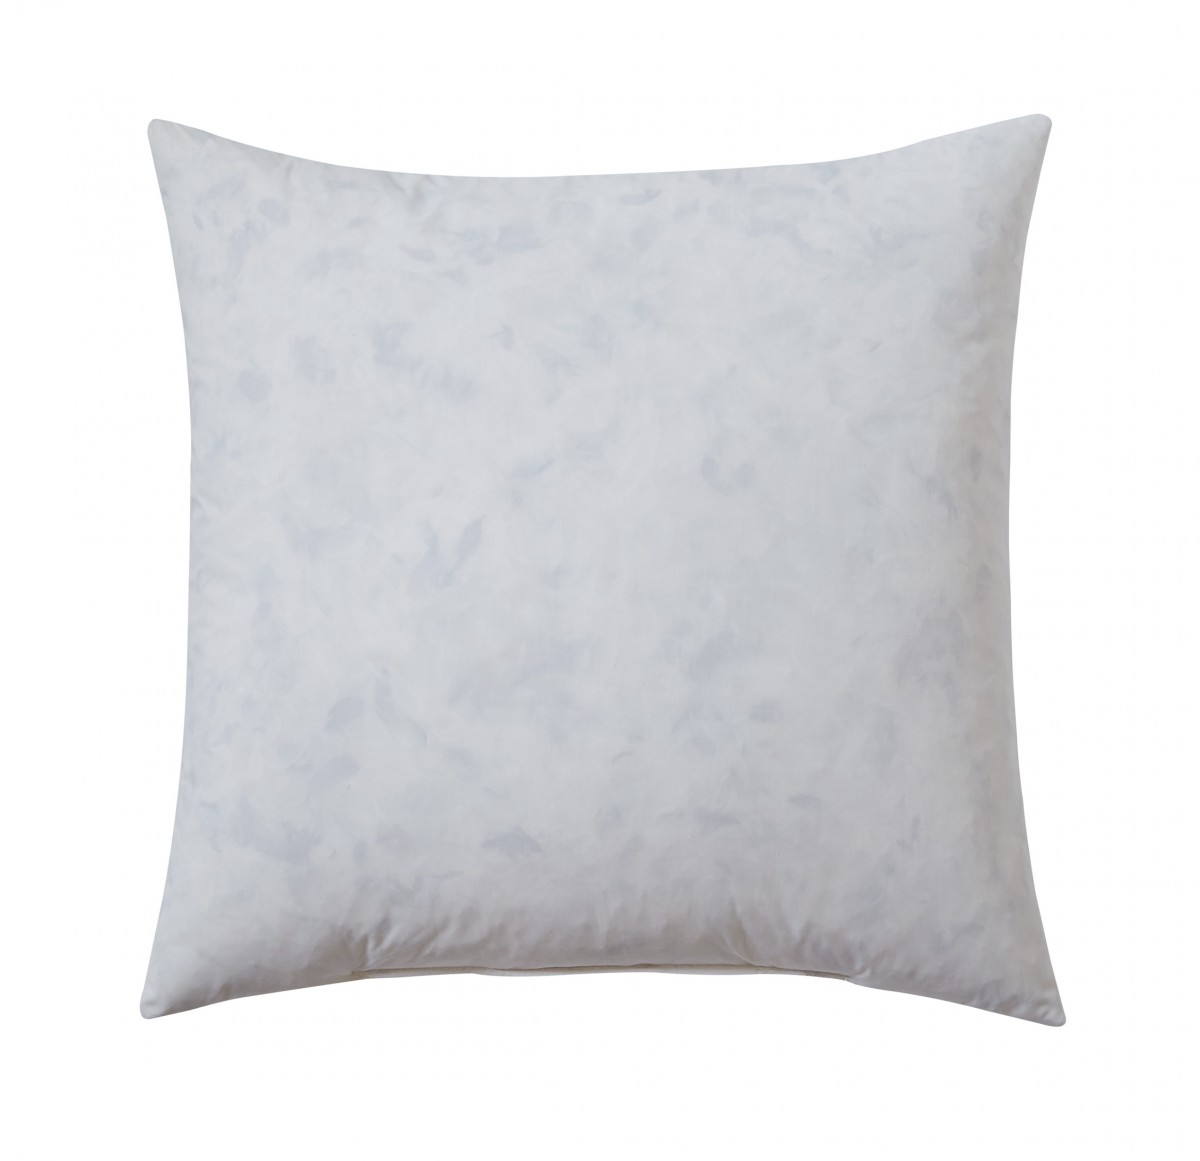 Signature Design by Ashley®Feather-fillMedium Pillow Insert